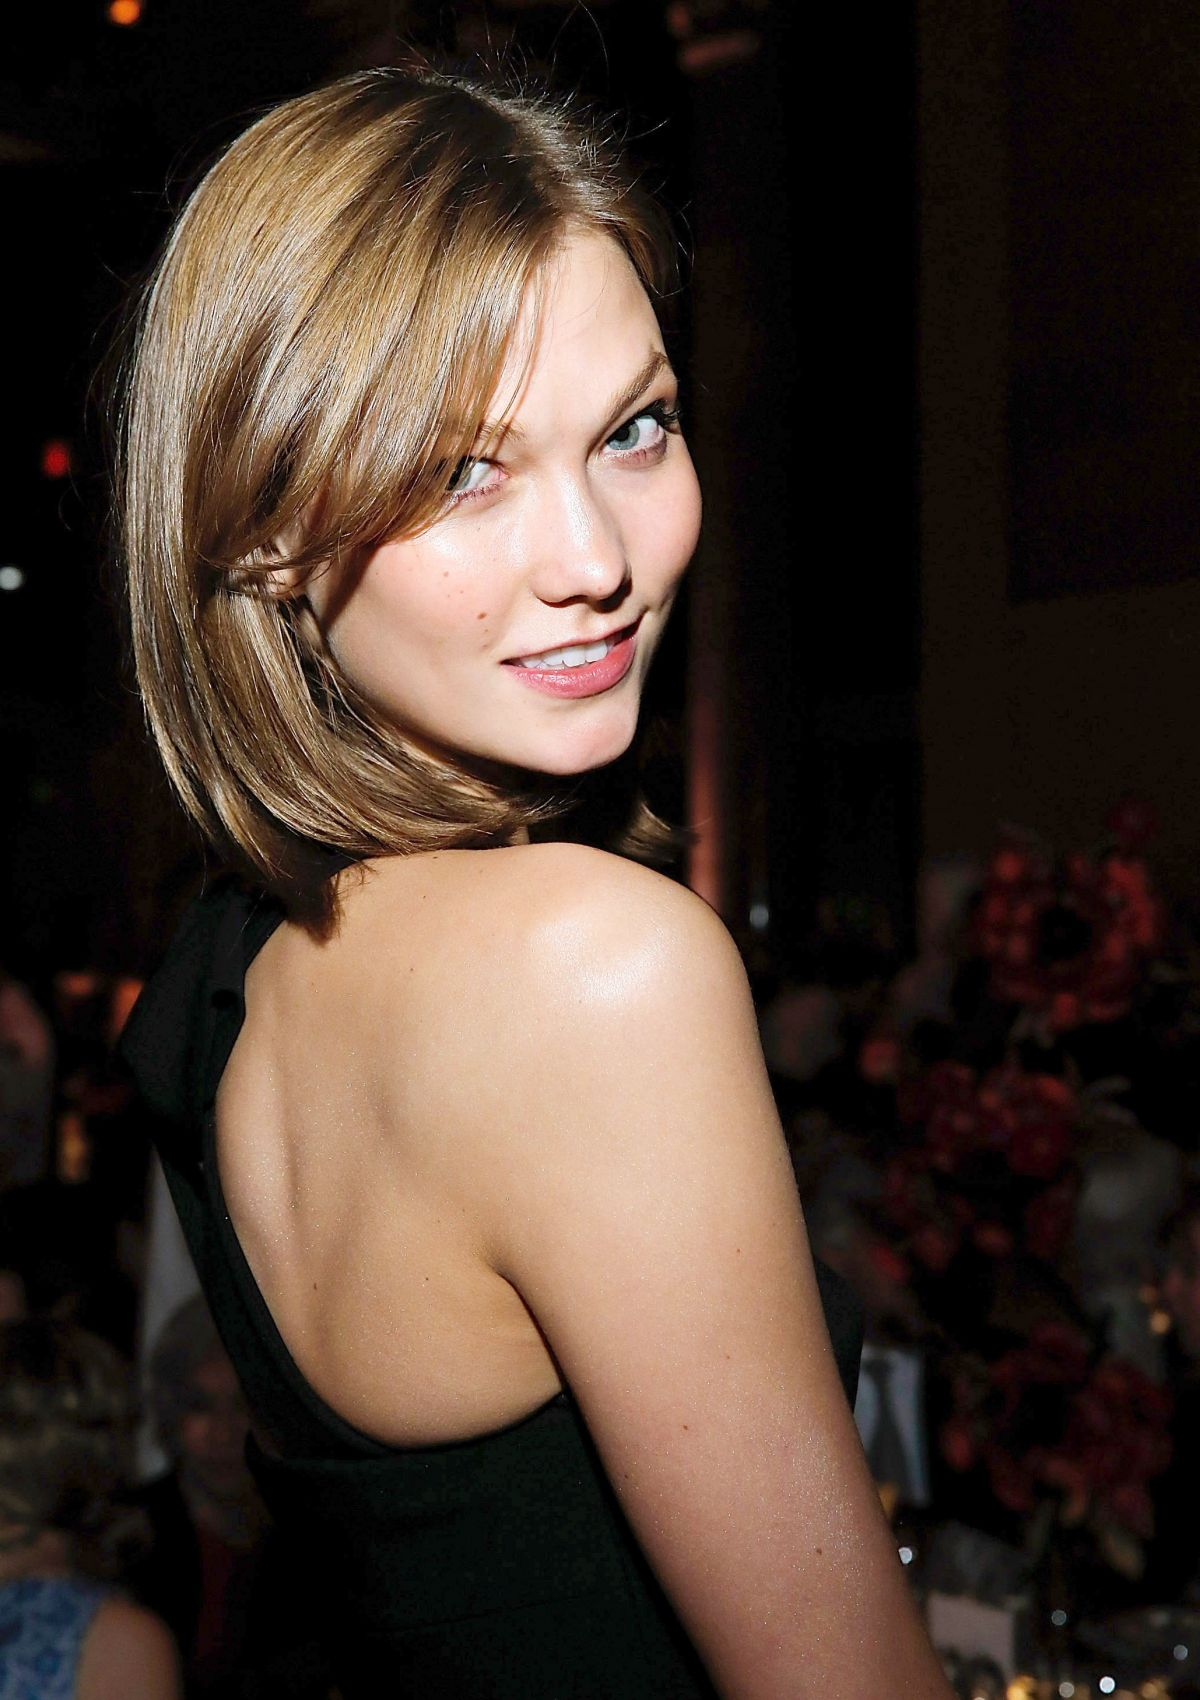 KARLIE KLOSS at the New Museum Spring Gala in New York